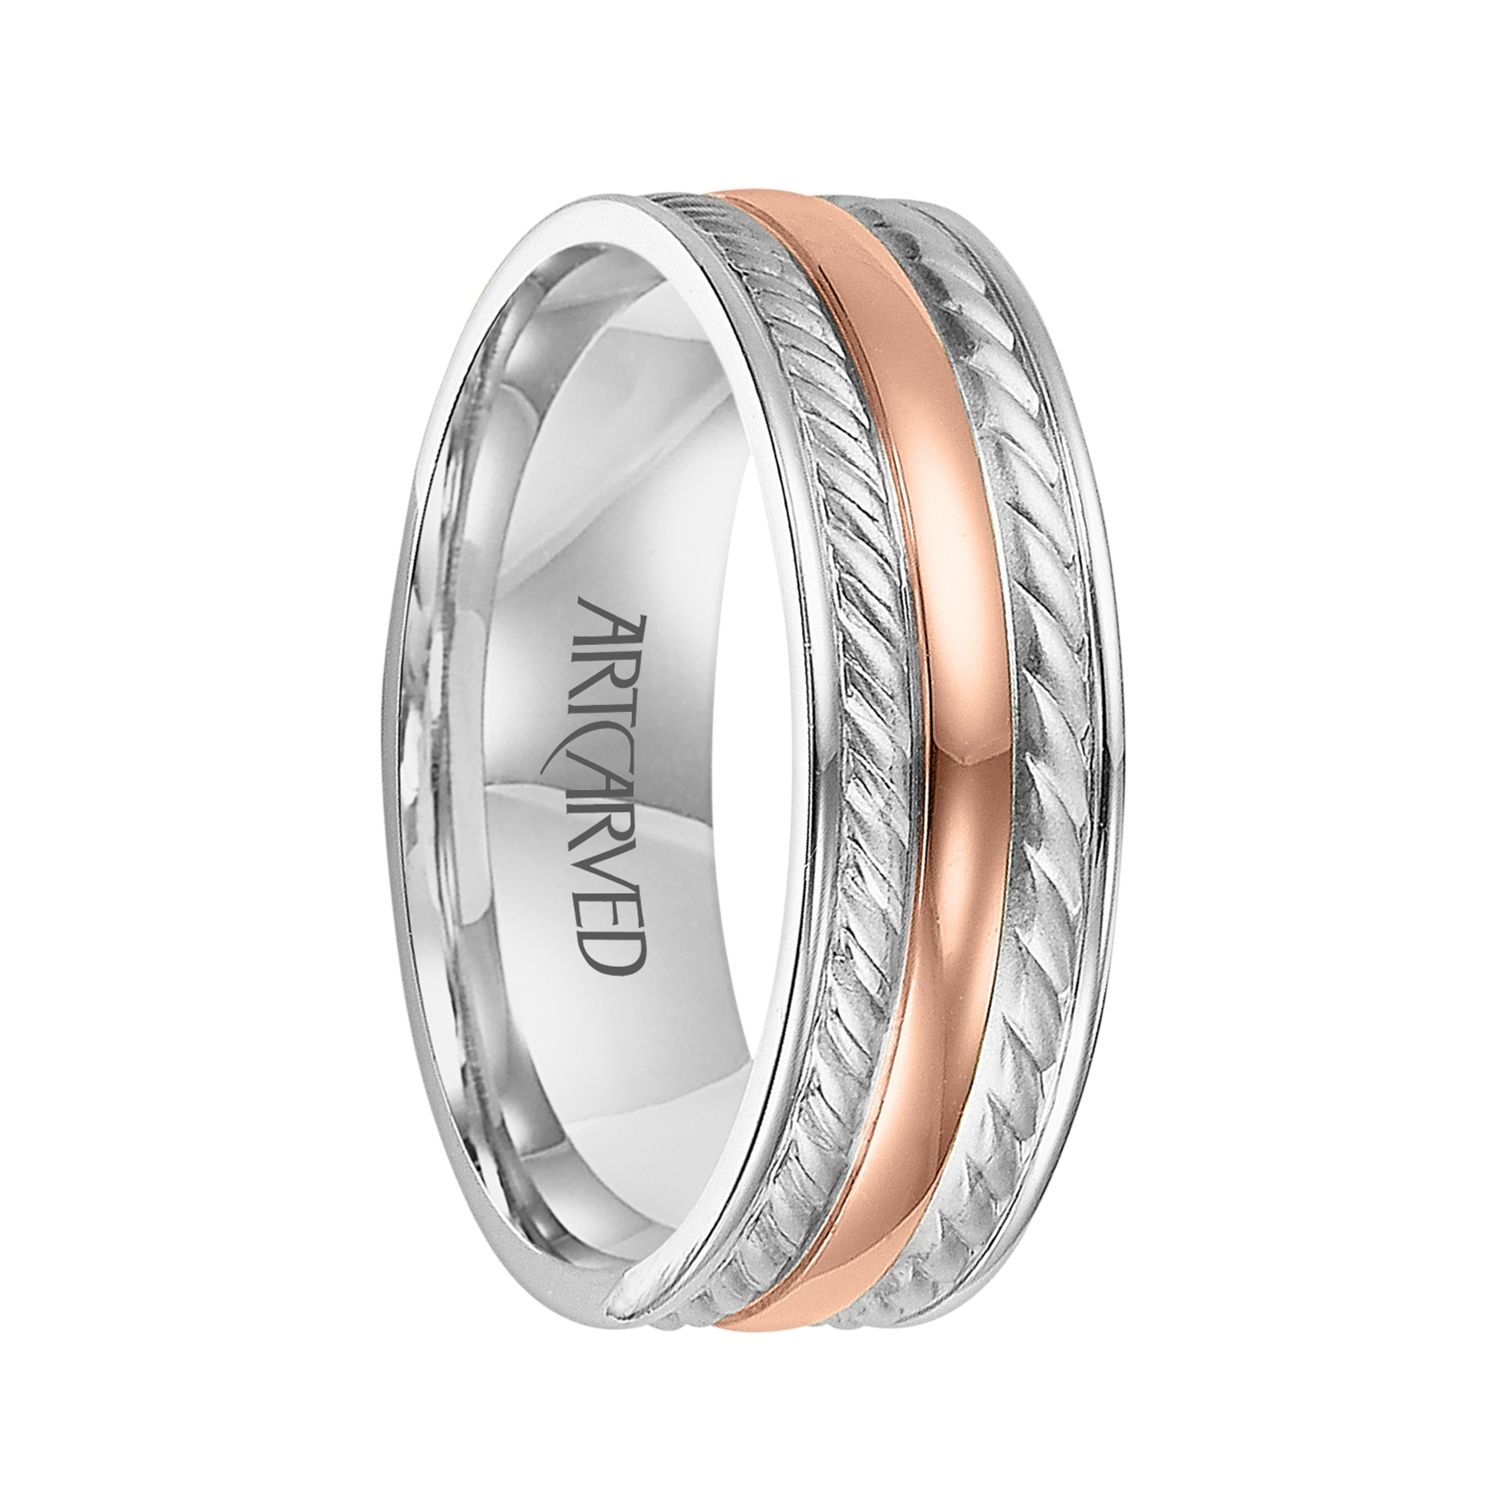 palladium wedding bands ArtCarved Rings DIXON Two Tone 14K White Gold Ring with Rose